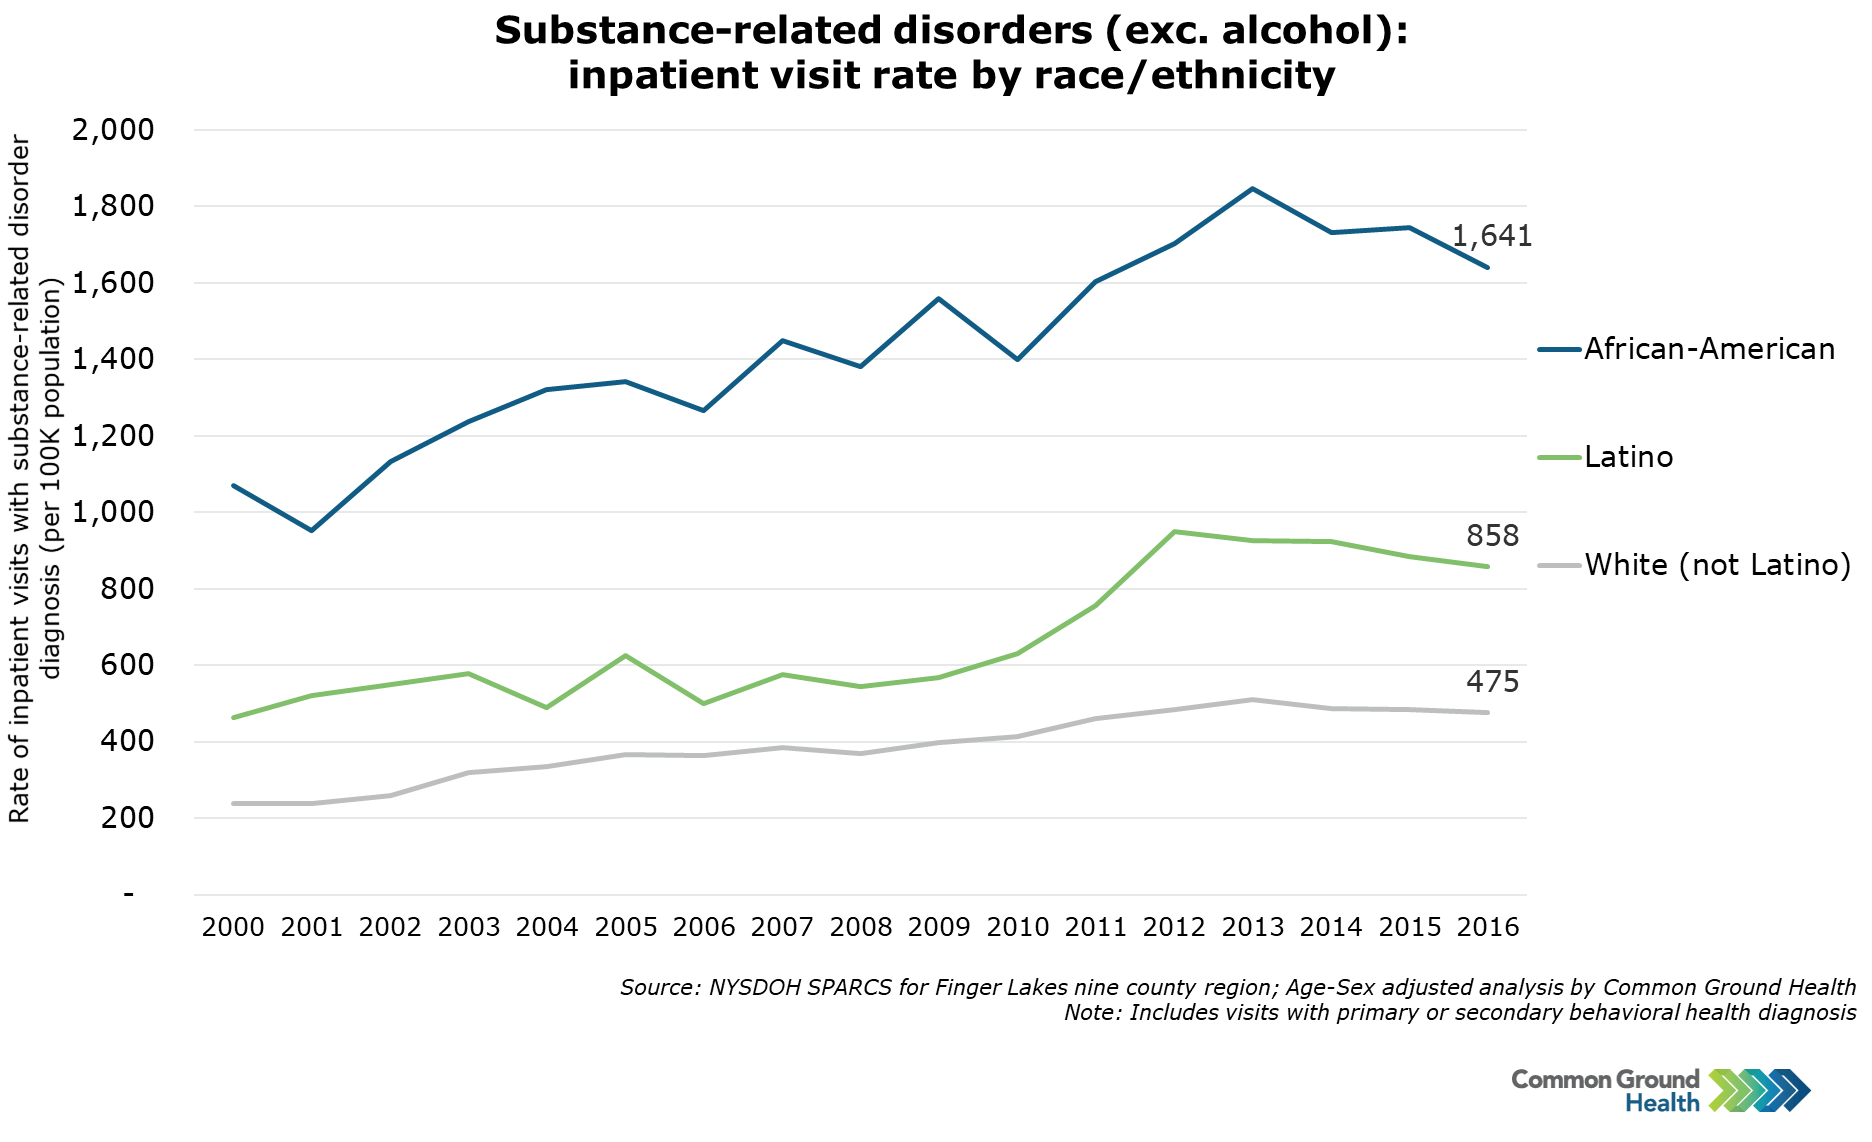 Substance-Related Disorders (exc. Alcohol): Inpatient Visits by Race/Ethnicity